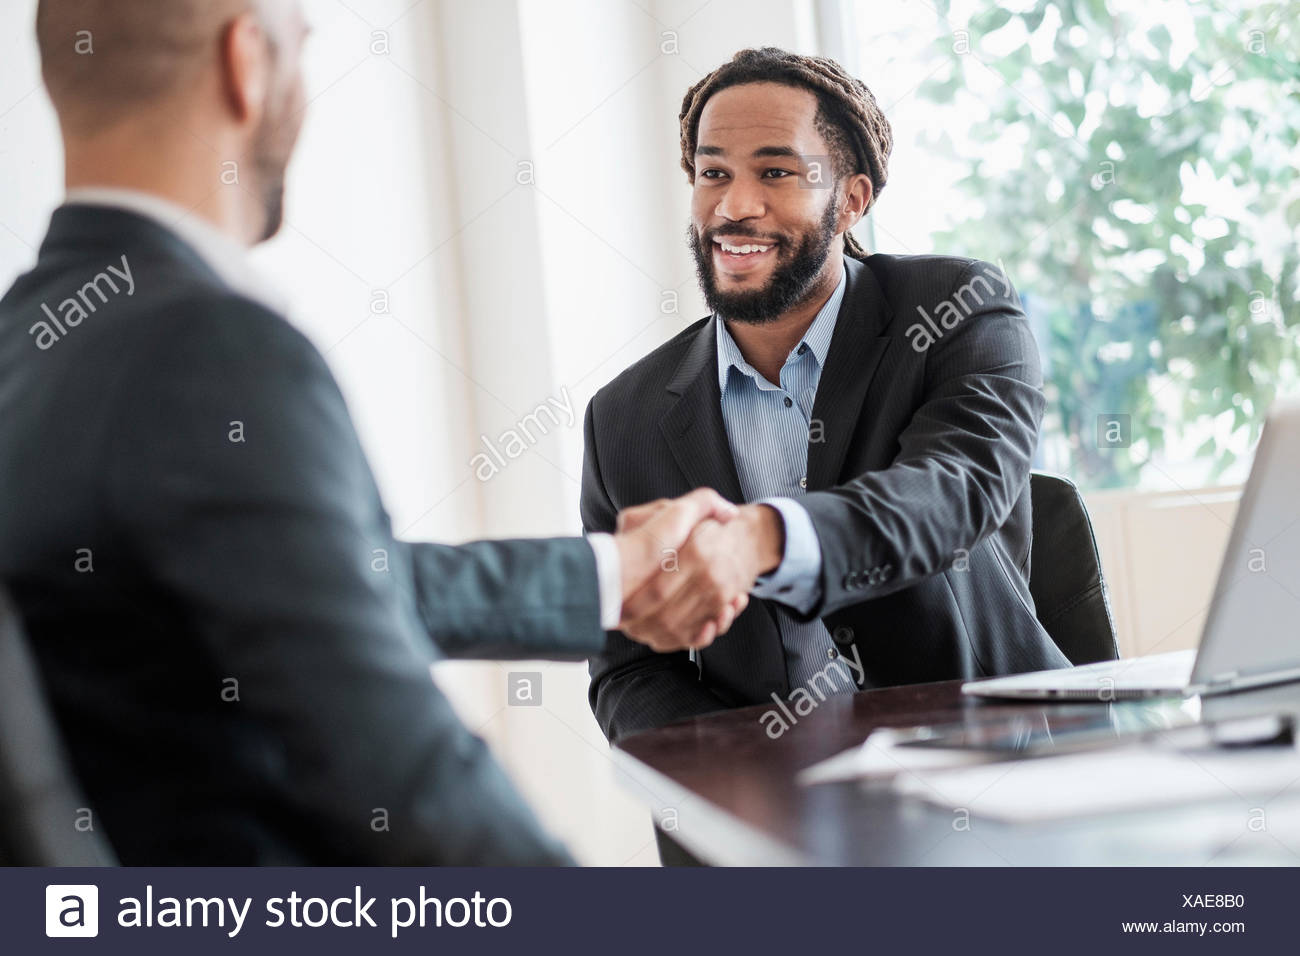 Smiling businessmen shaking hands in office - Stock Image